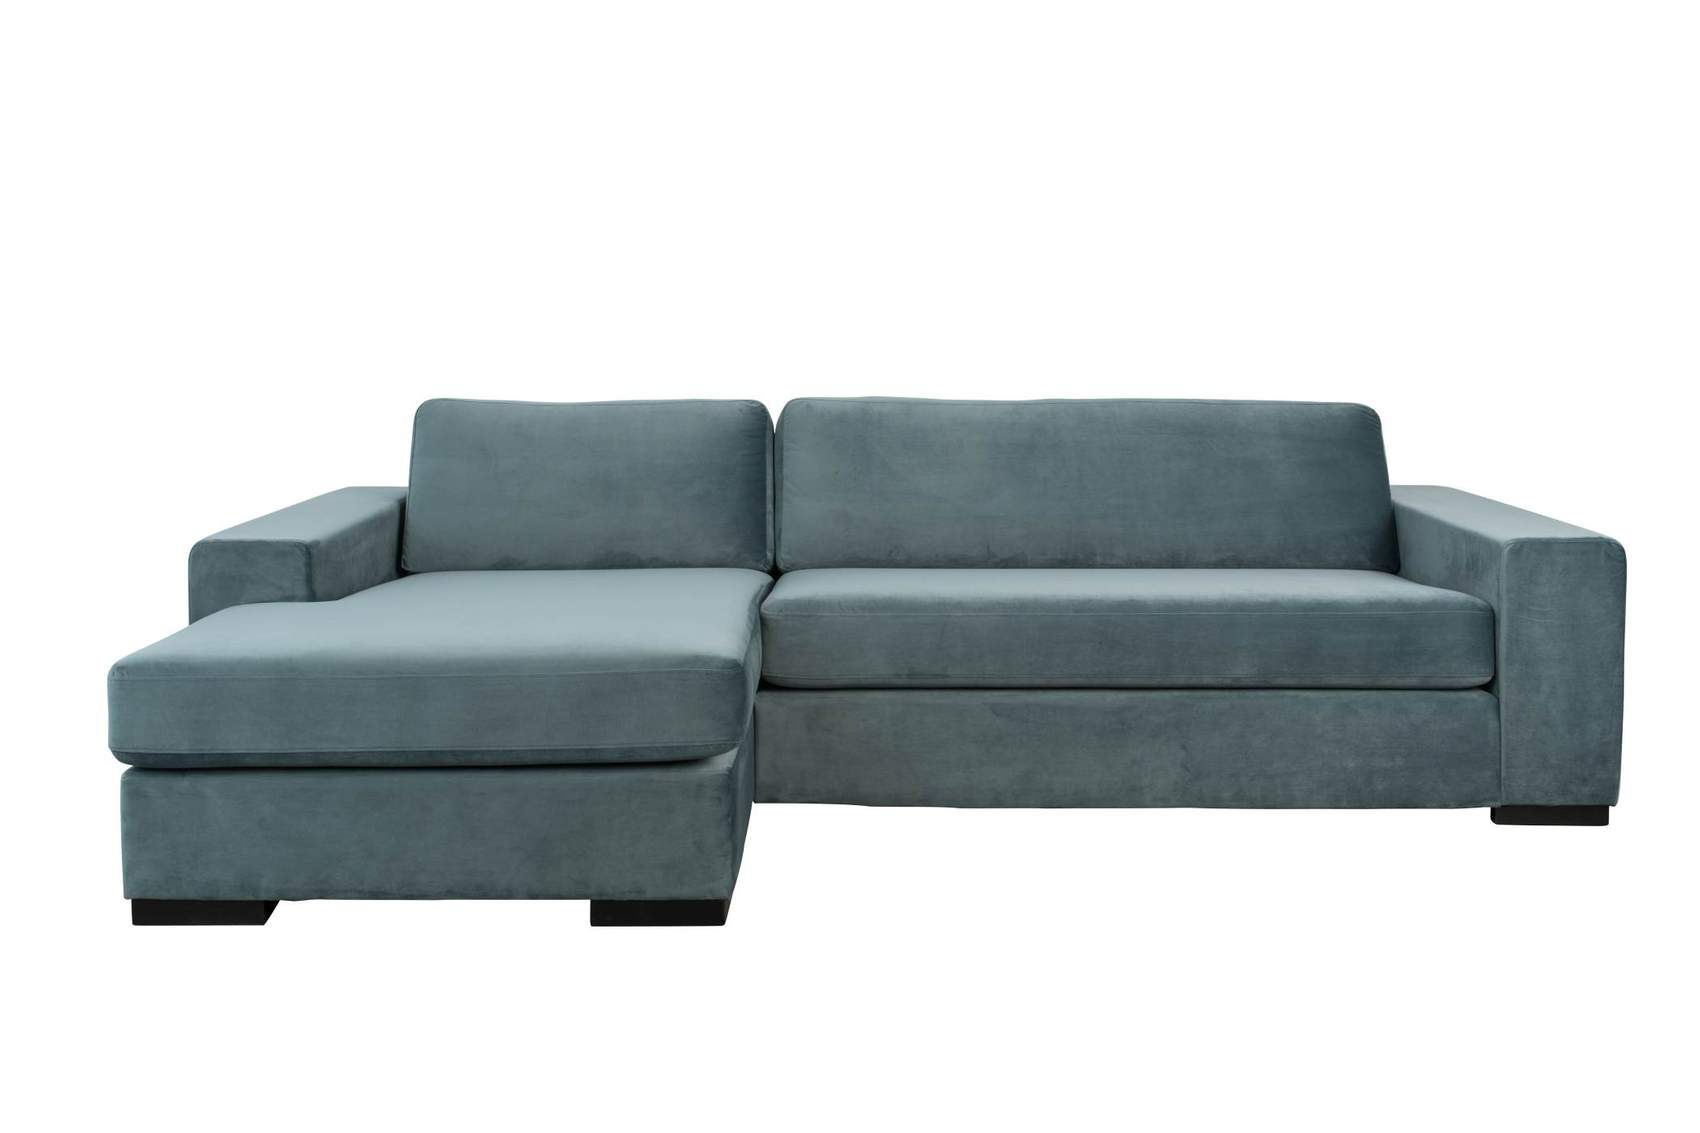 Sofa Petrol Sofa Couch Fiep Left Petrol Von Zuiver Ottomane Links